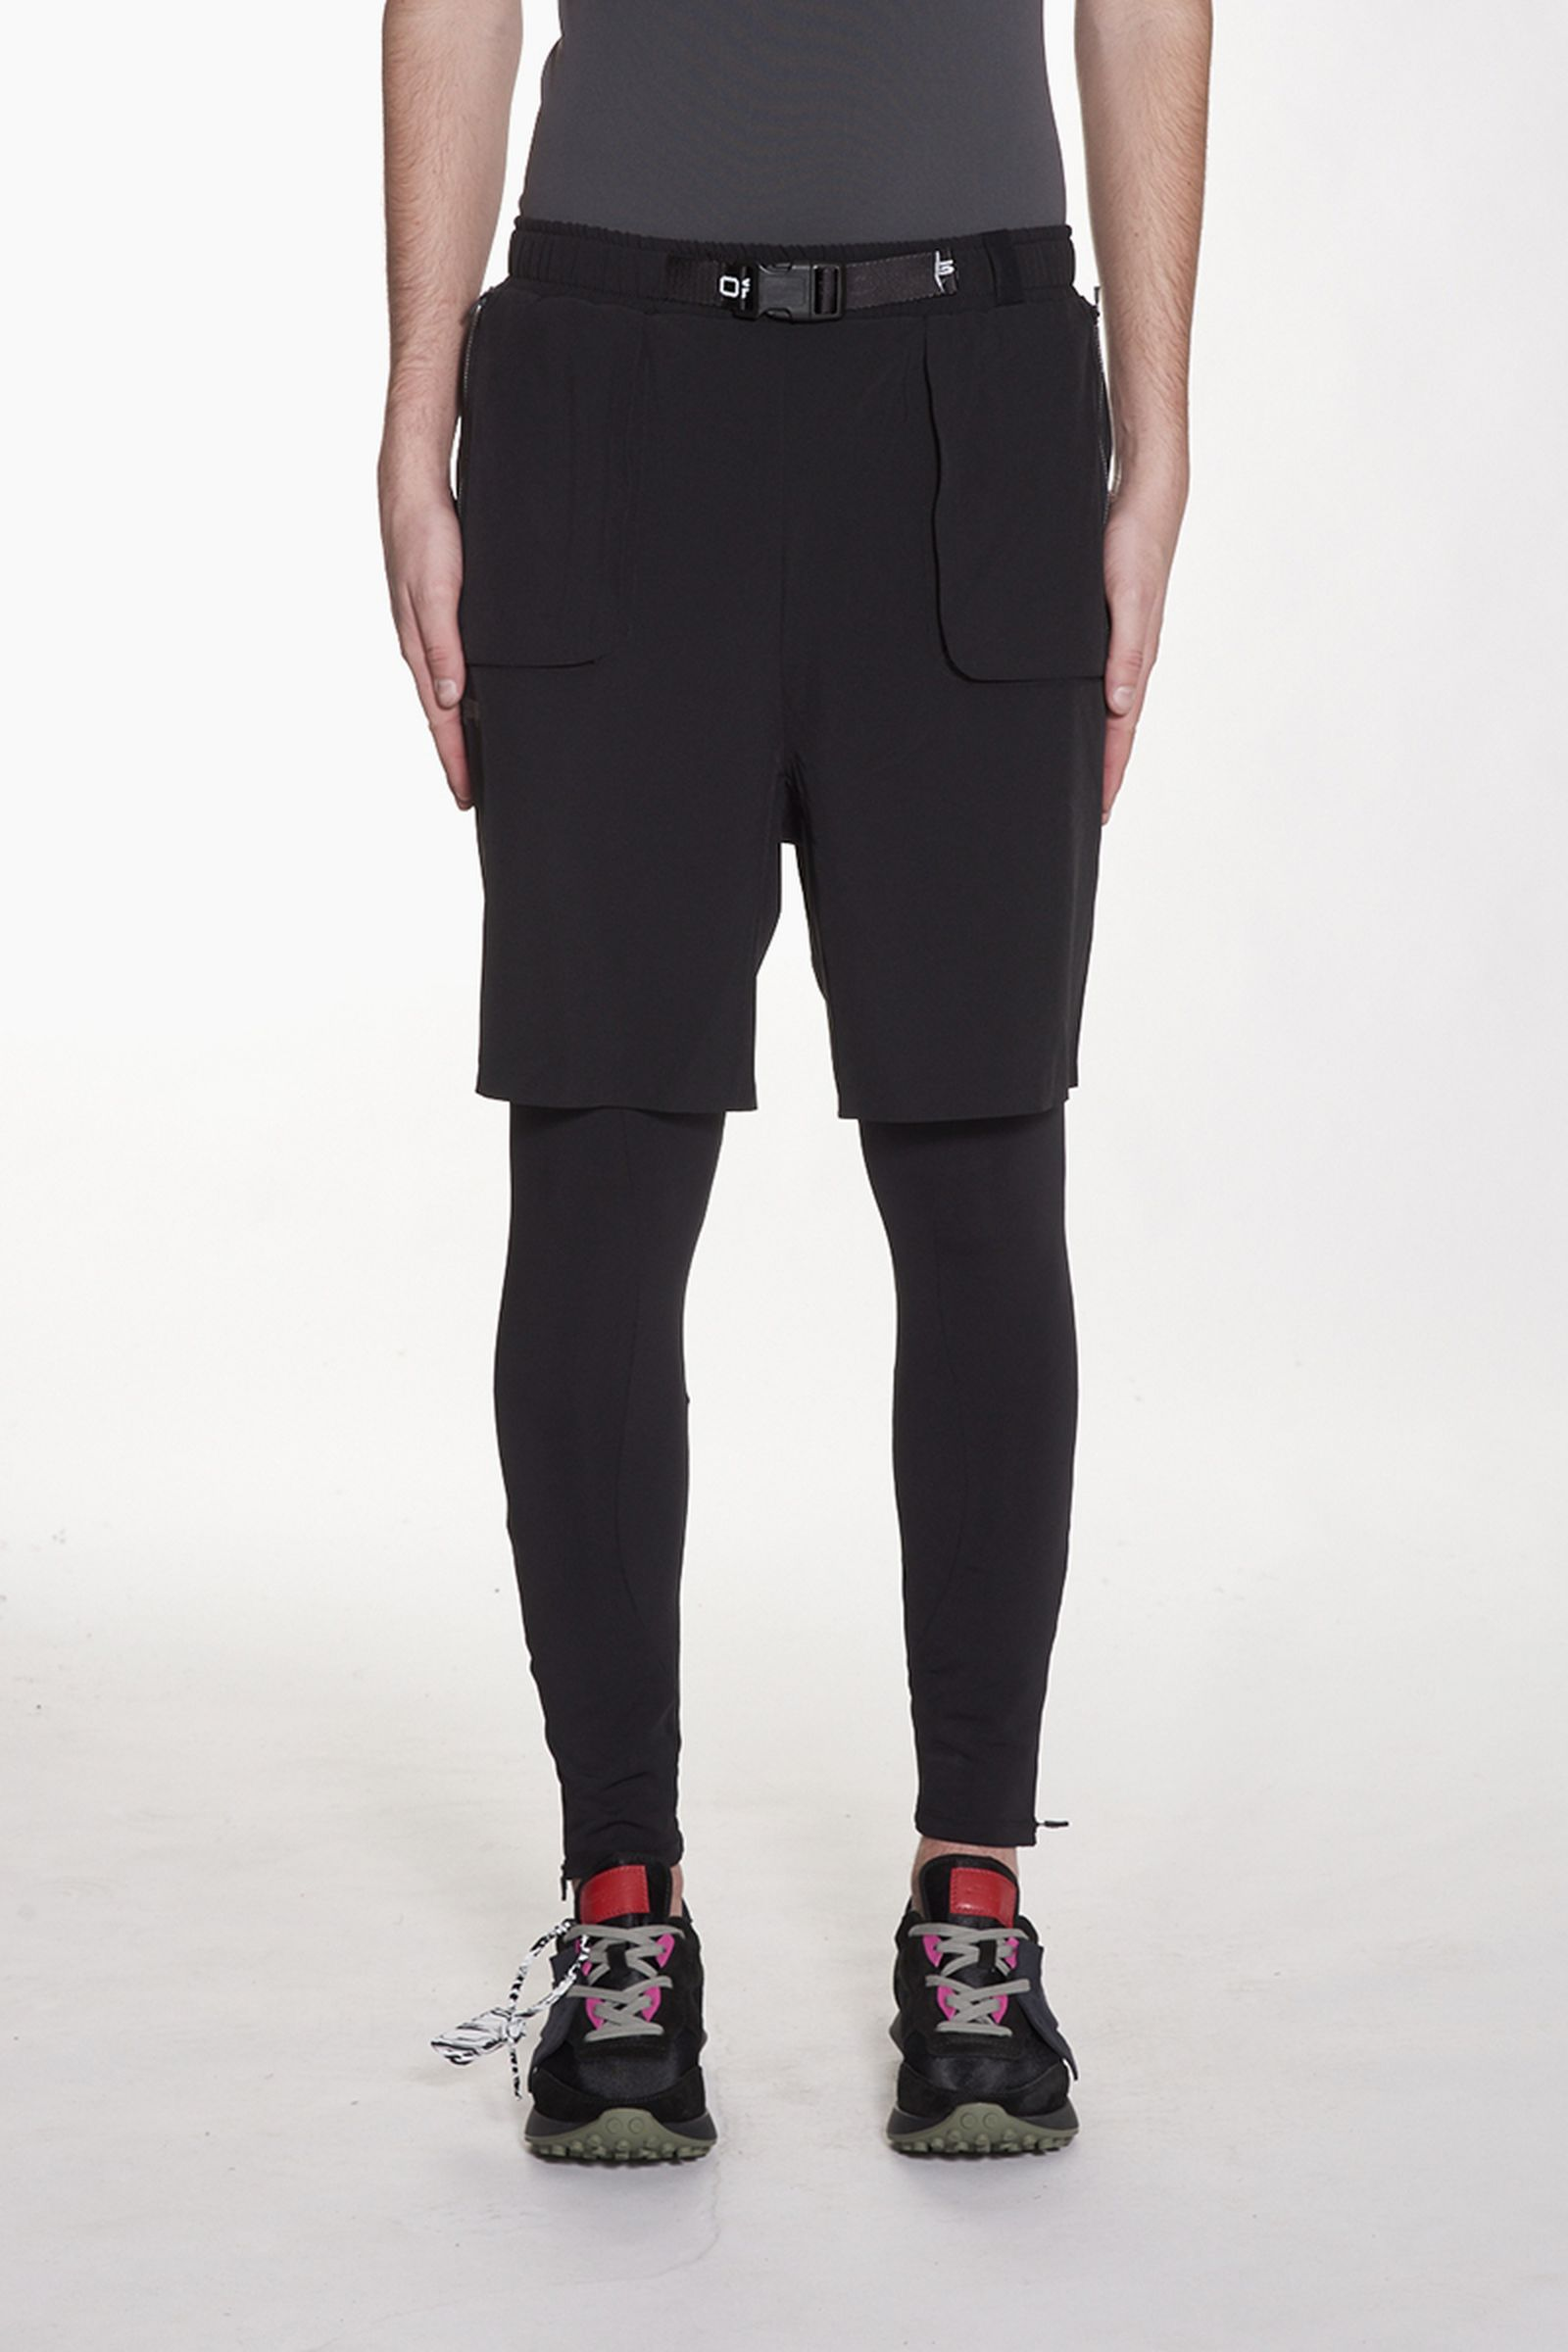 6off-white-activewear-off-active